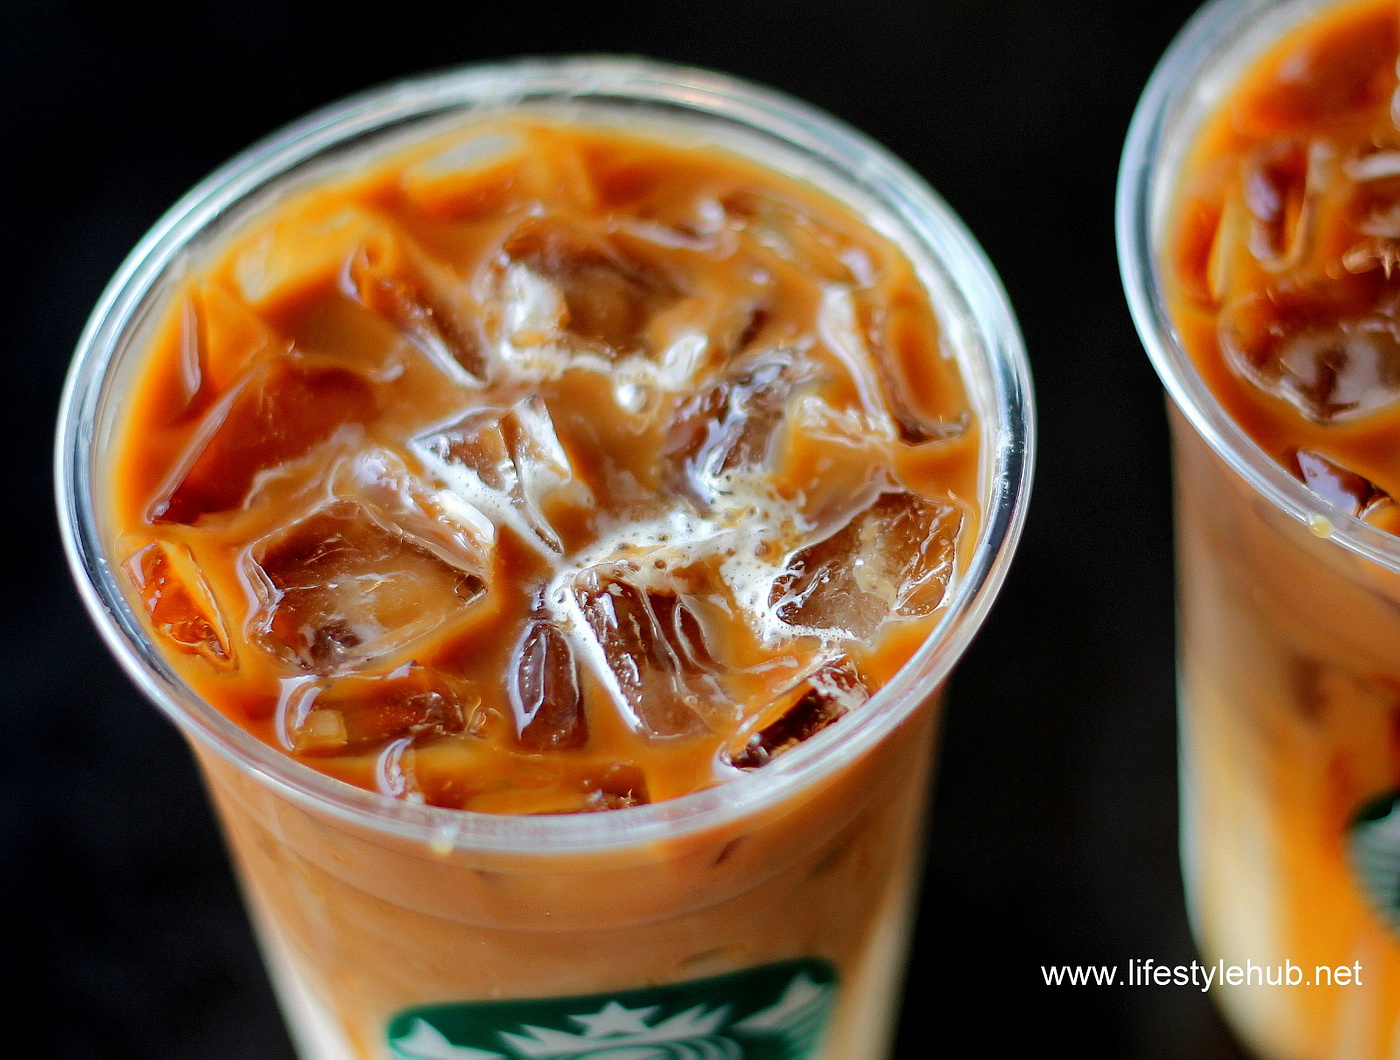 starbucks iced coffee caramel and hazelnut 2015